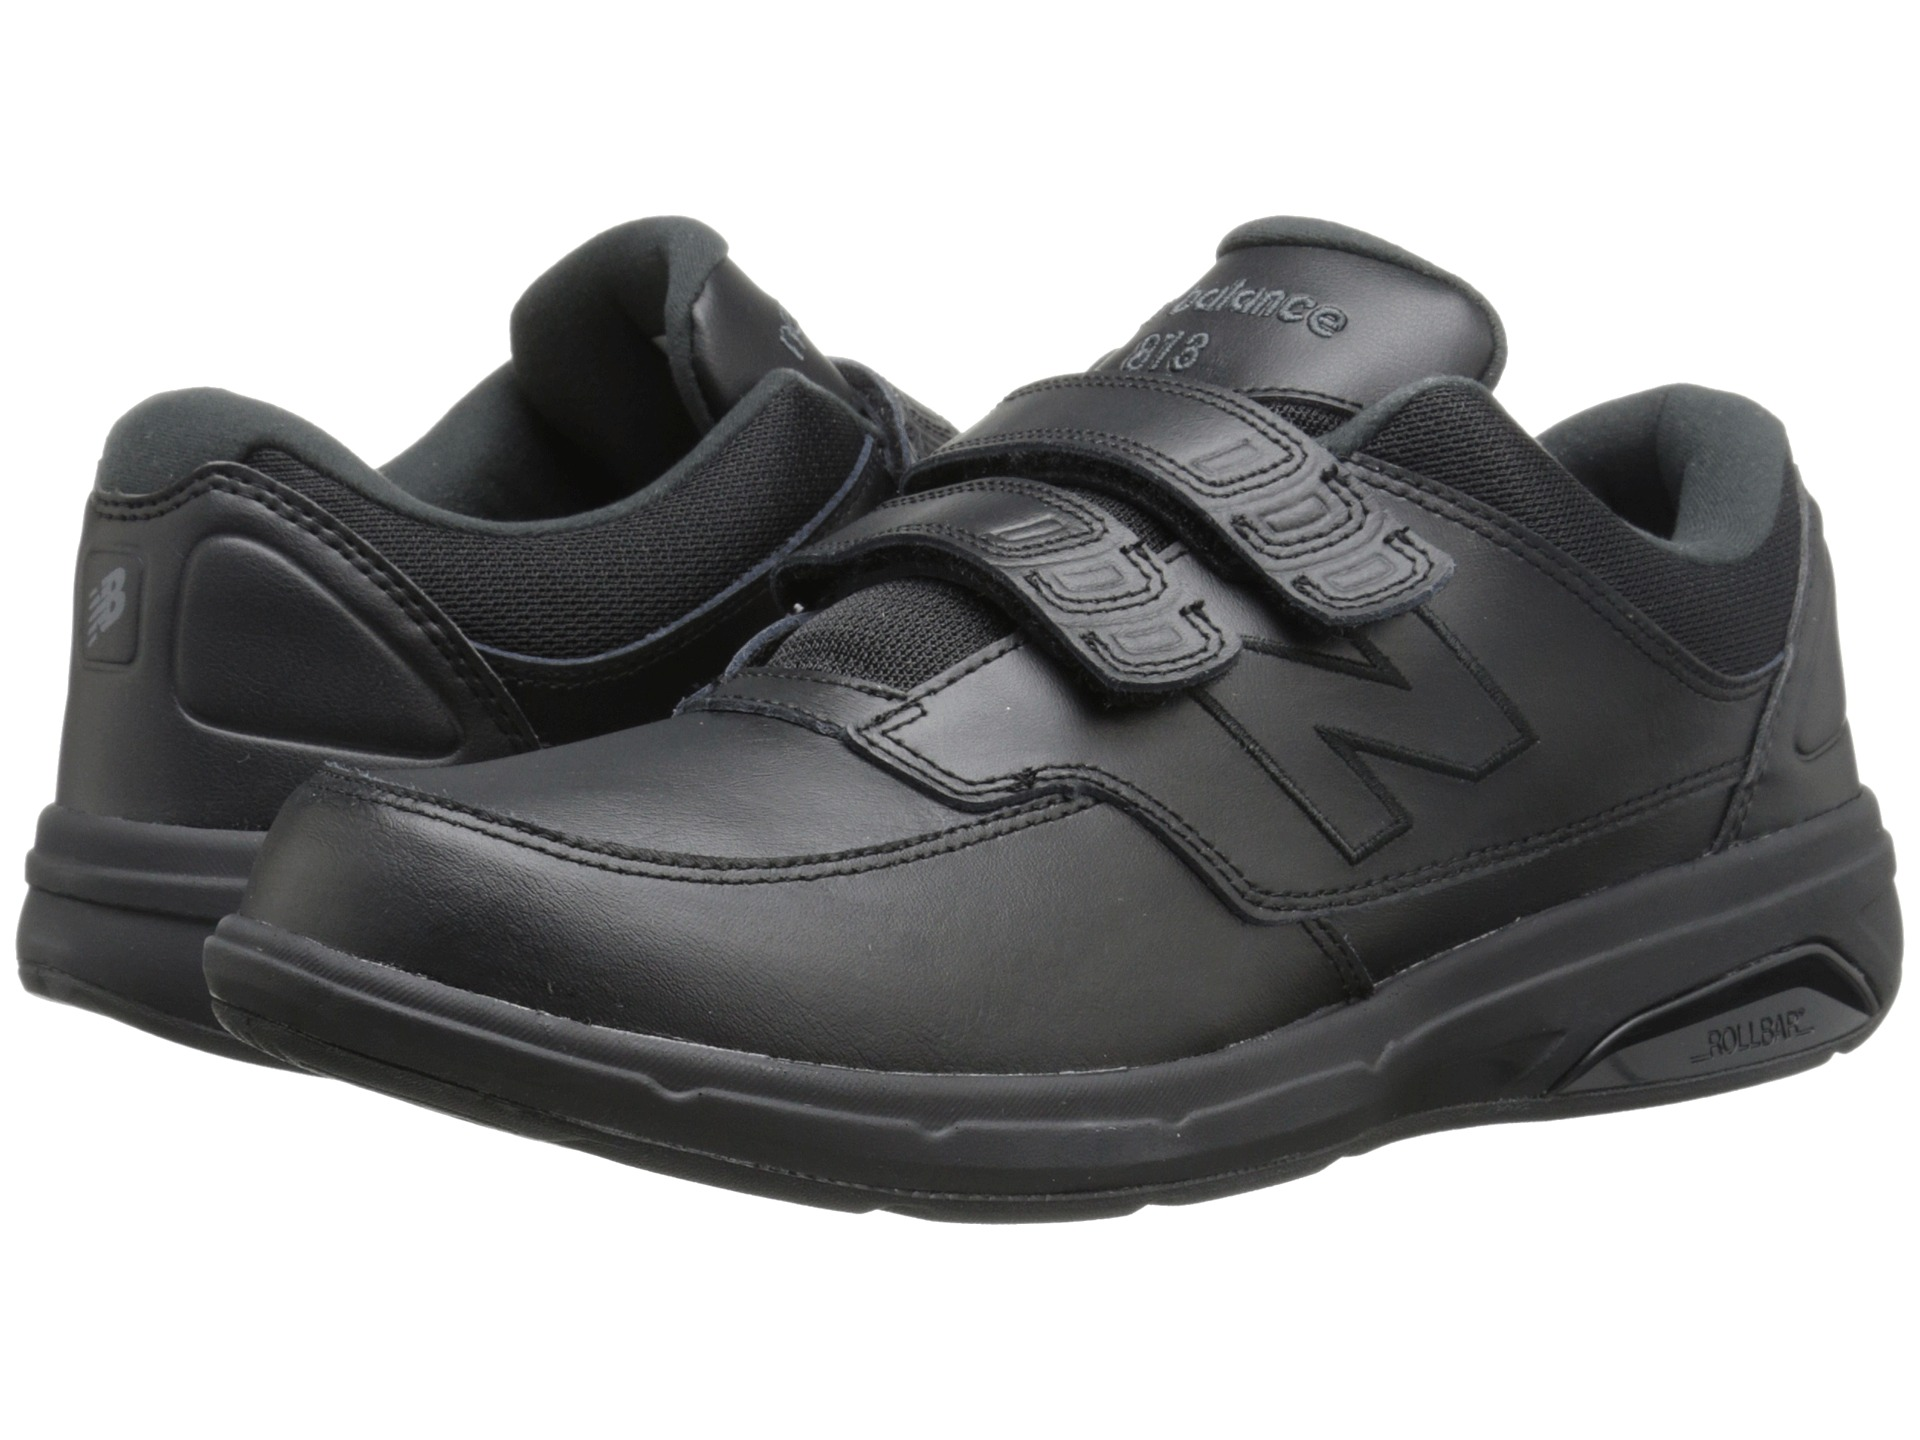 What Are The Best Walking Shoes For Diabetics